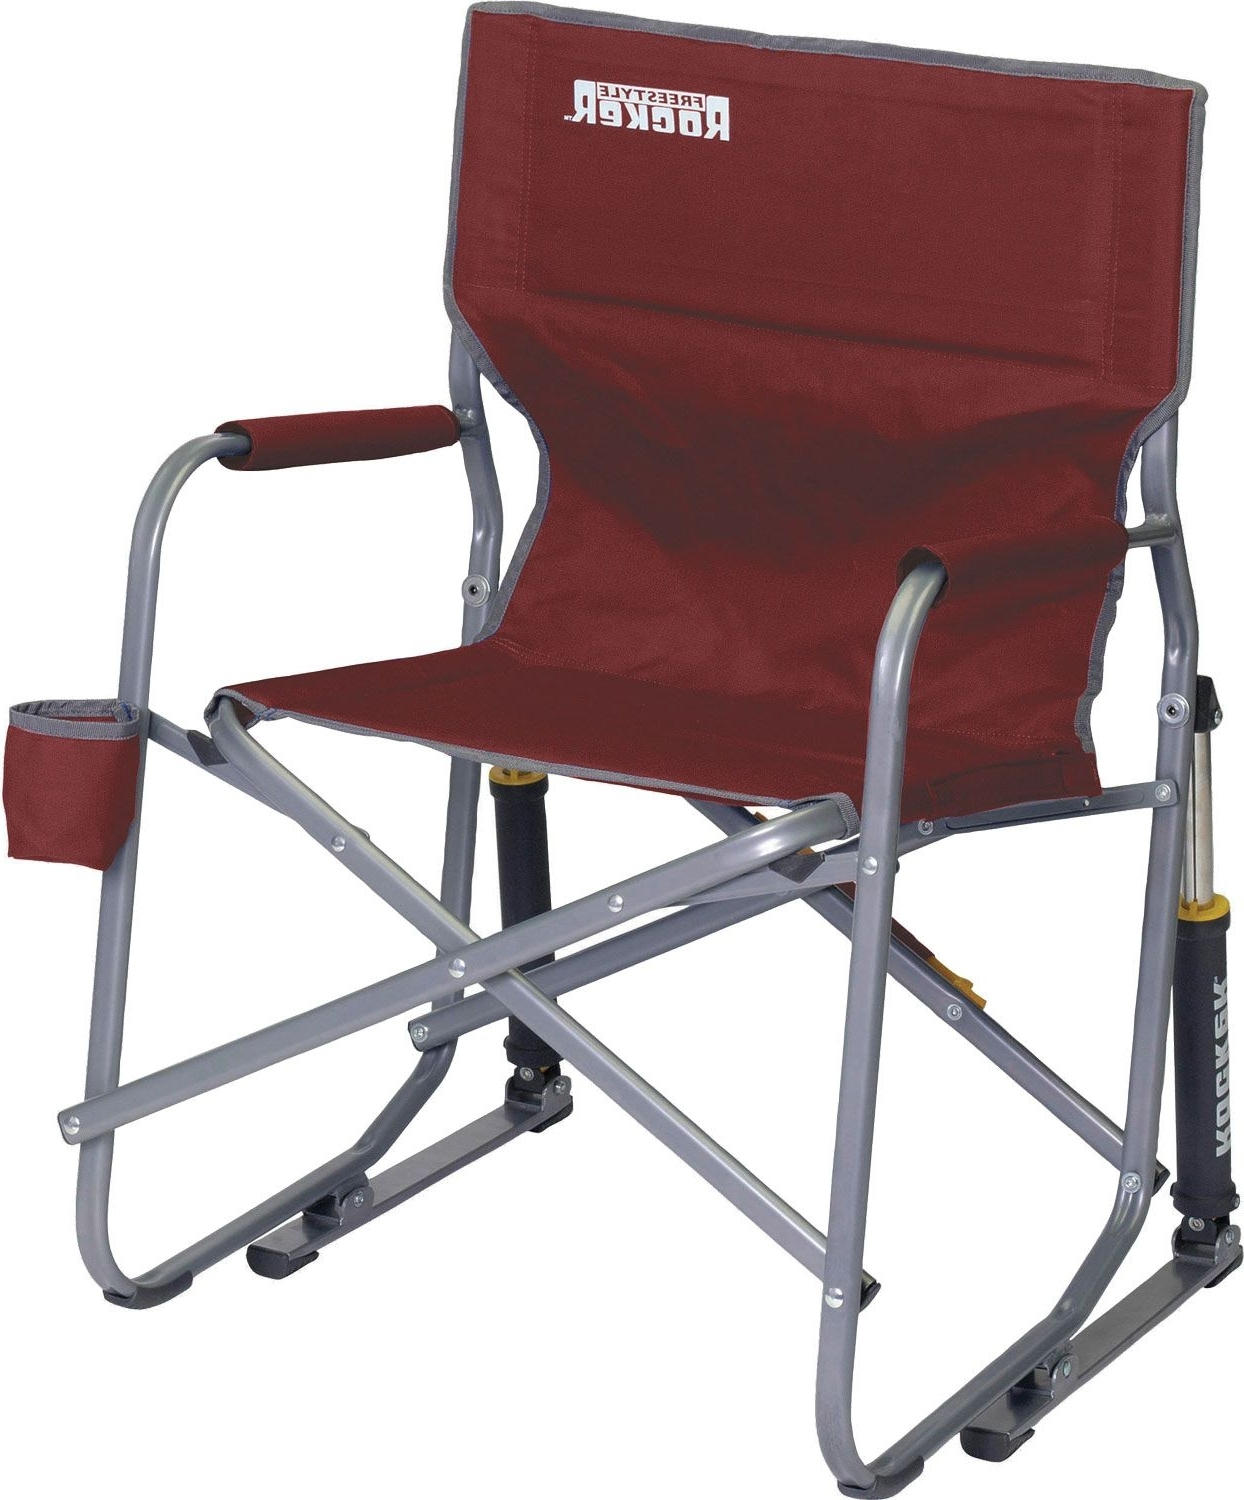 Widely Used Gci Outdoor Freestyle Rocker Chair Sporting Goods Cinnamon Folding Pertaining To Folding Rocking Chairs (View 7 of 20)